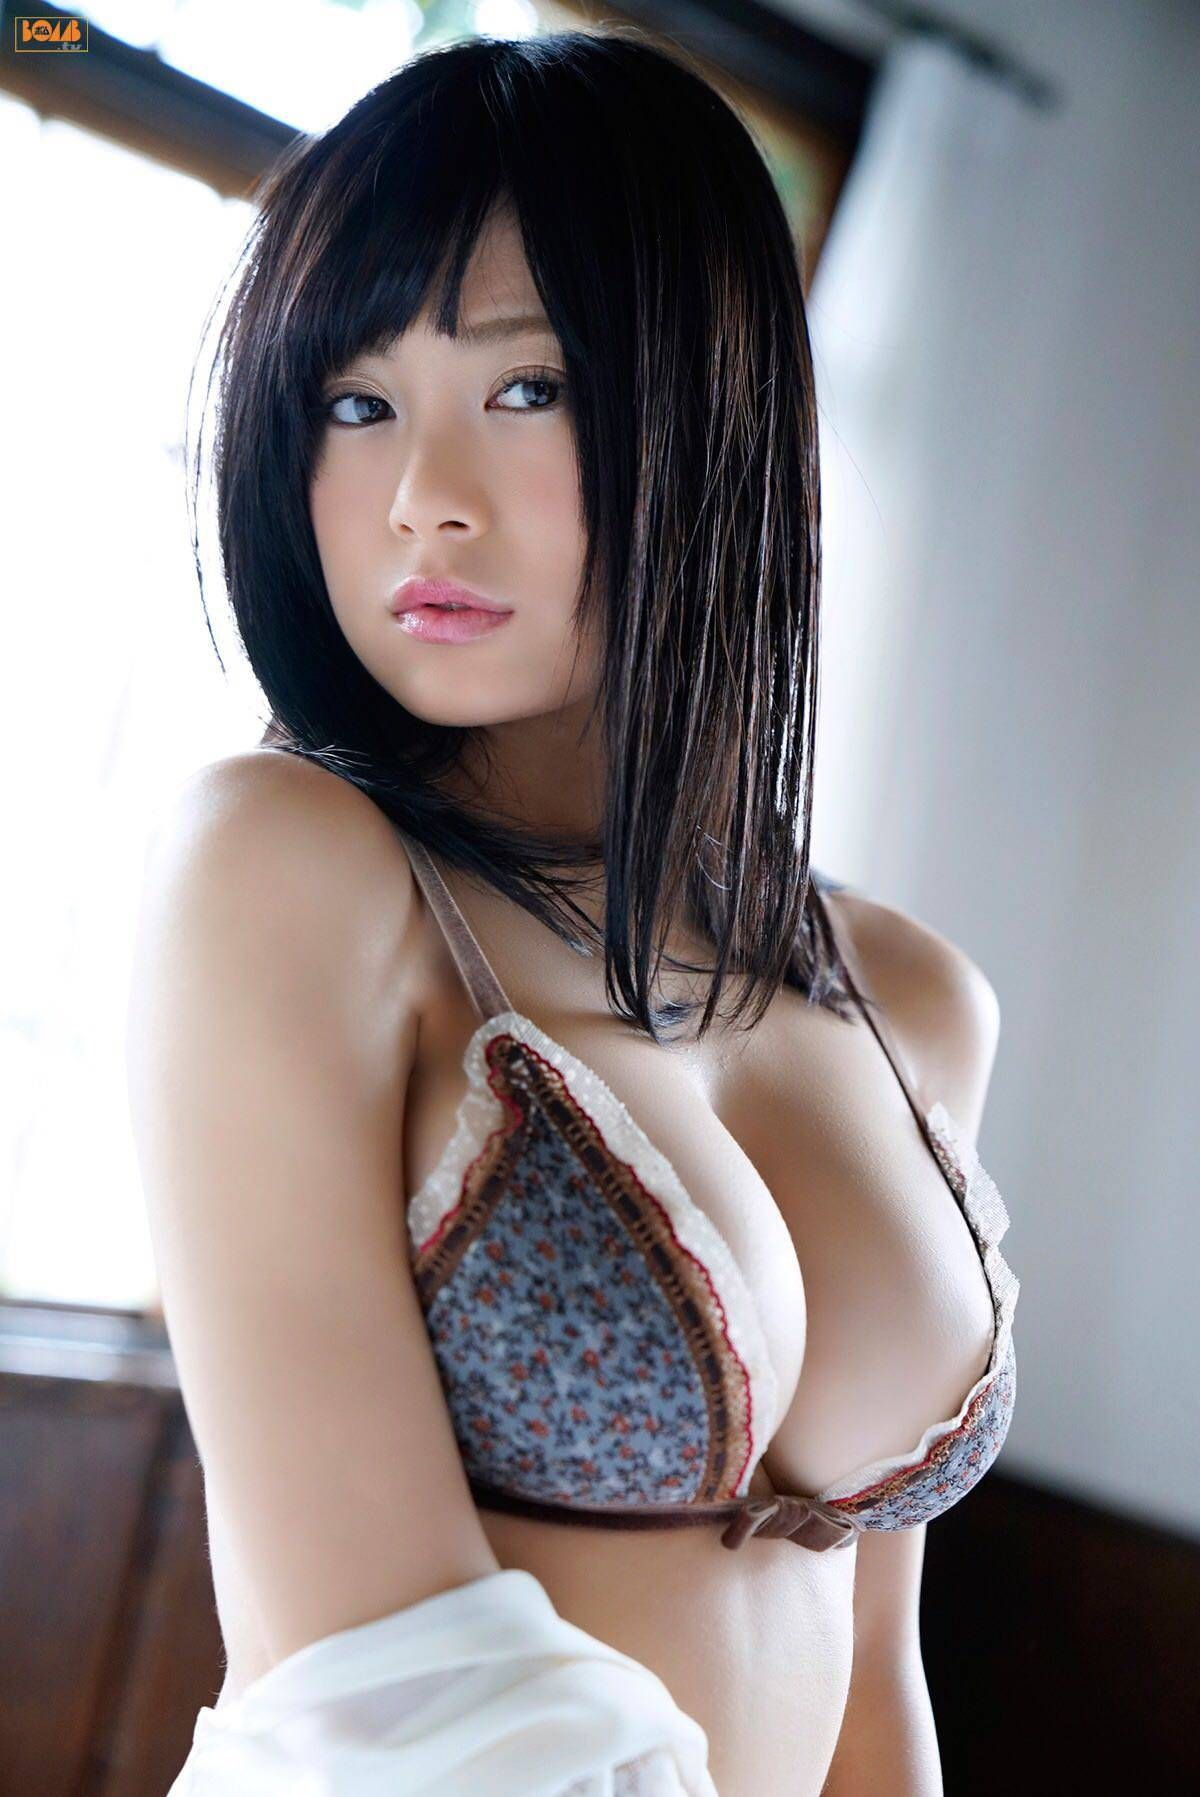 Busty japan white wife | XXX foto)